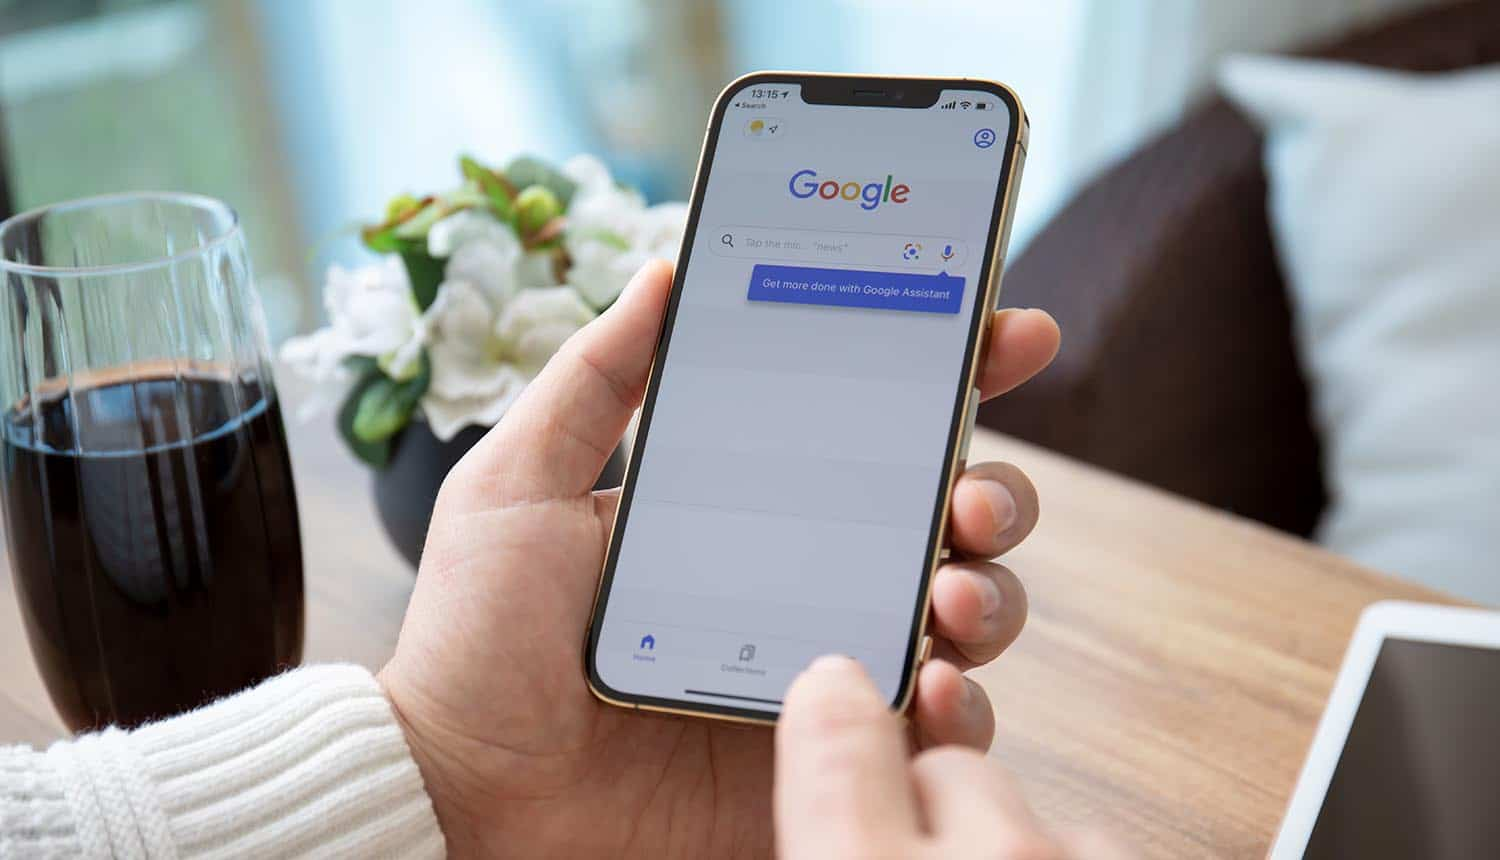 Hand with holding Apple iPhone with Google on screen showing default search engine